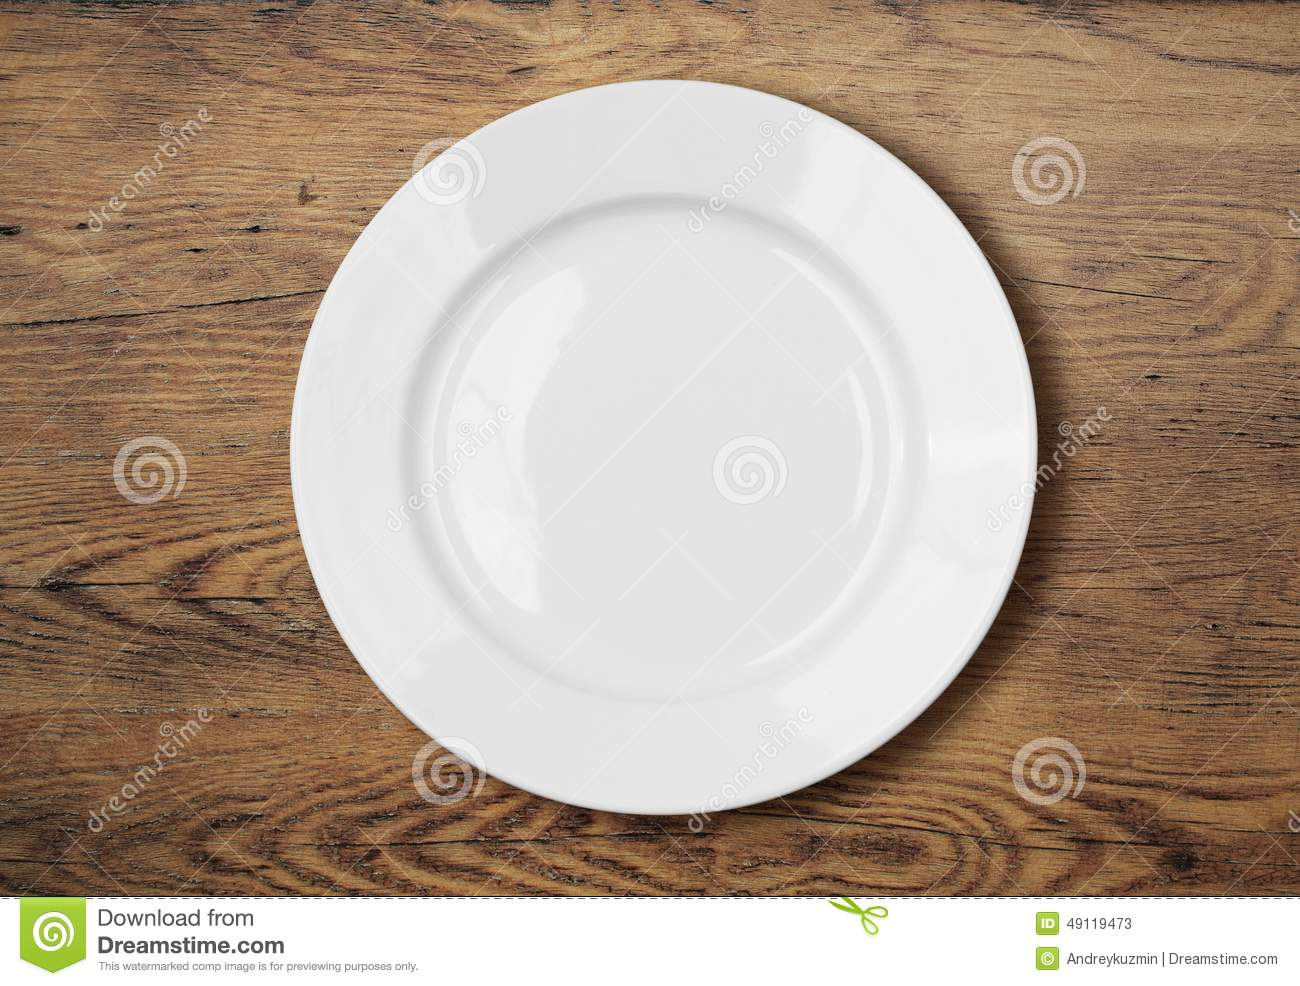 White empty dinner plate on wooden table surface